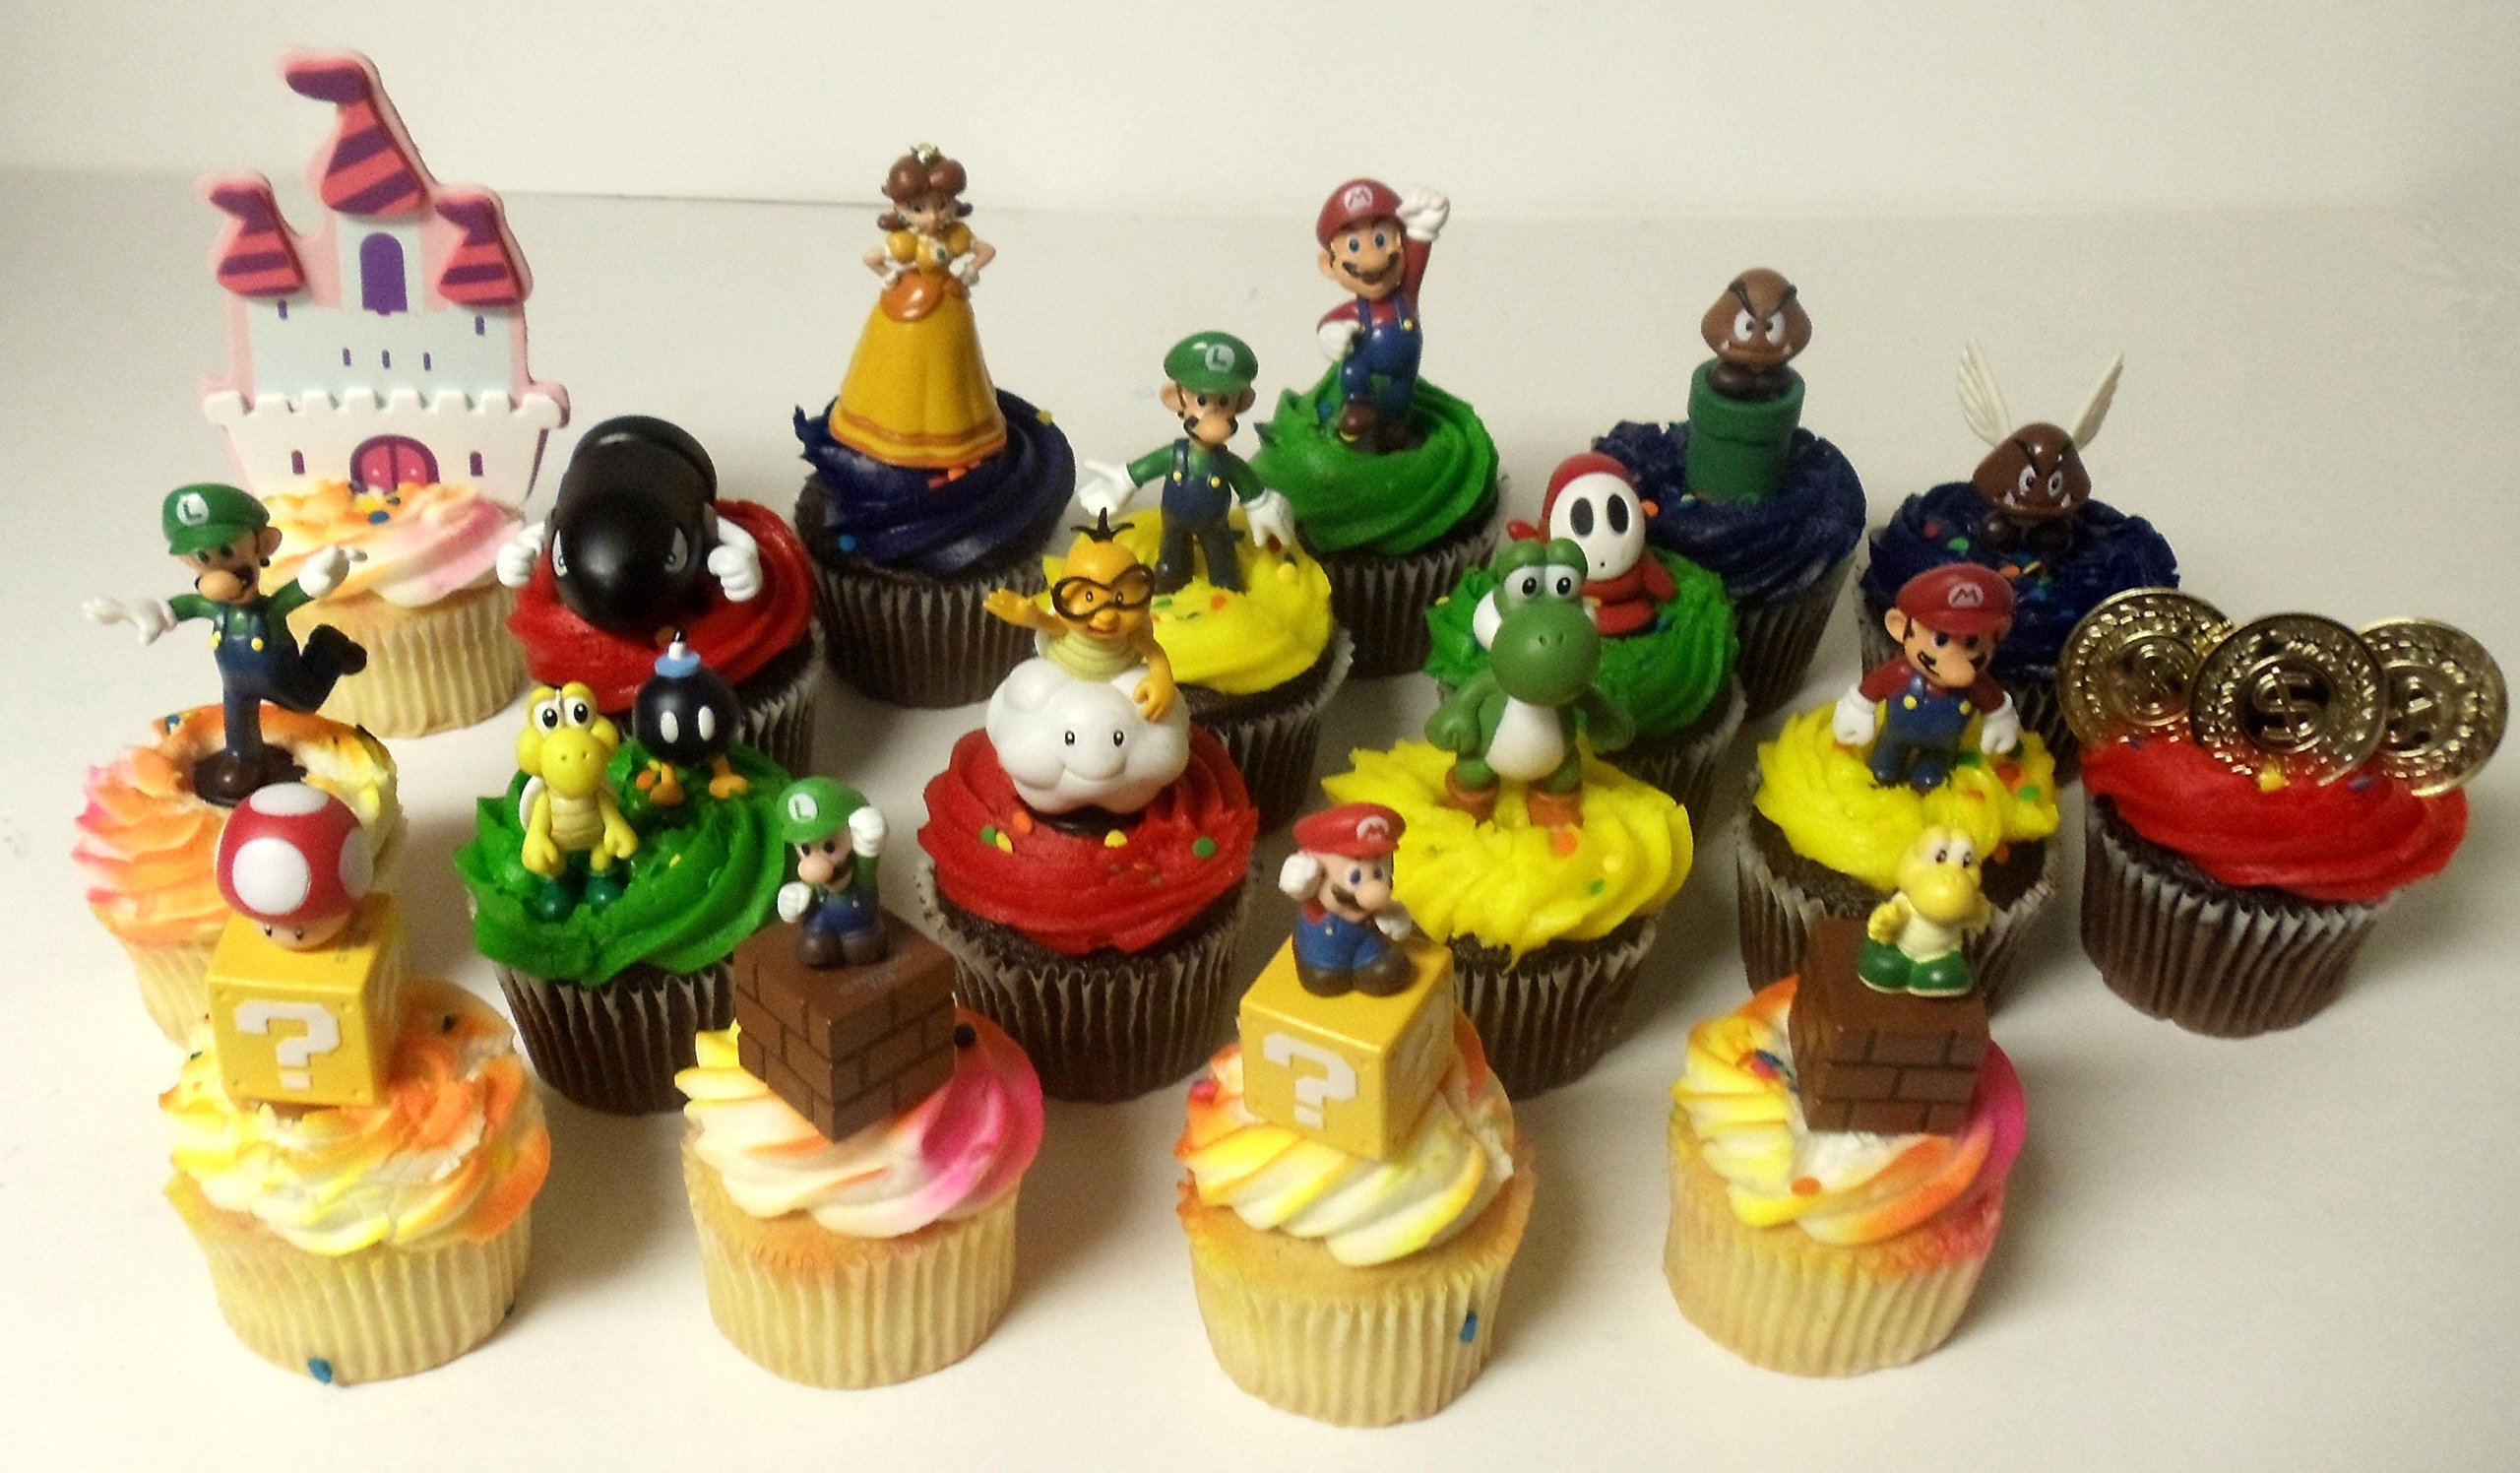 """Super Mario Brothers 18 Piece Deluxe Birthday Cupcake Topper Set Featuring Shy, Mario, Goomba, Yoshi, Bomb, Luigi, Koopa Troopa, Mushroom, Princess Daisy, Lakitu Spiny and Themed Decorative Accessories - Cupcake Toppers Range from 1"""" to 4"""" Tall by Nintendo"""